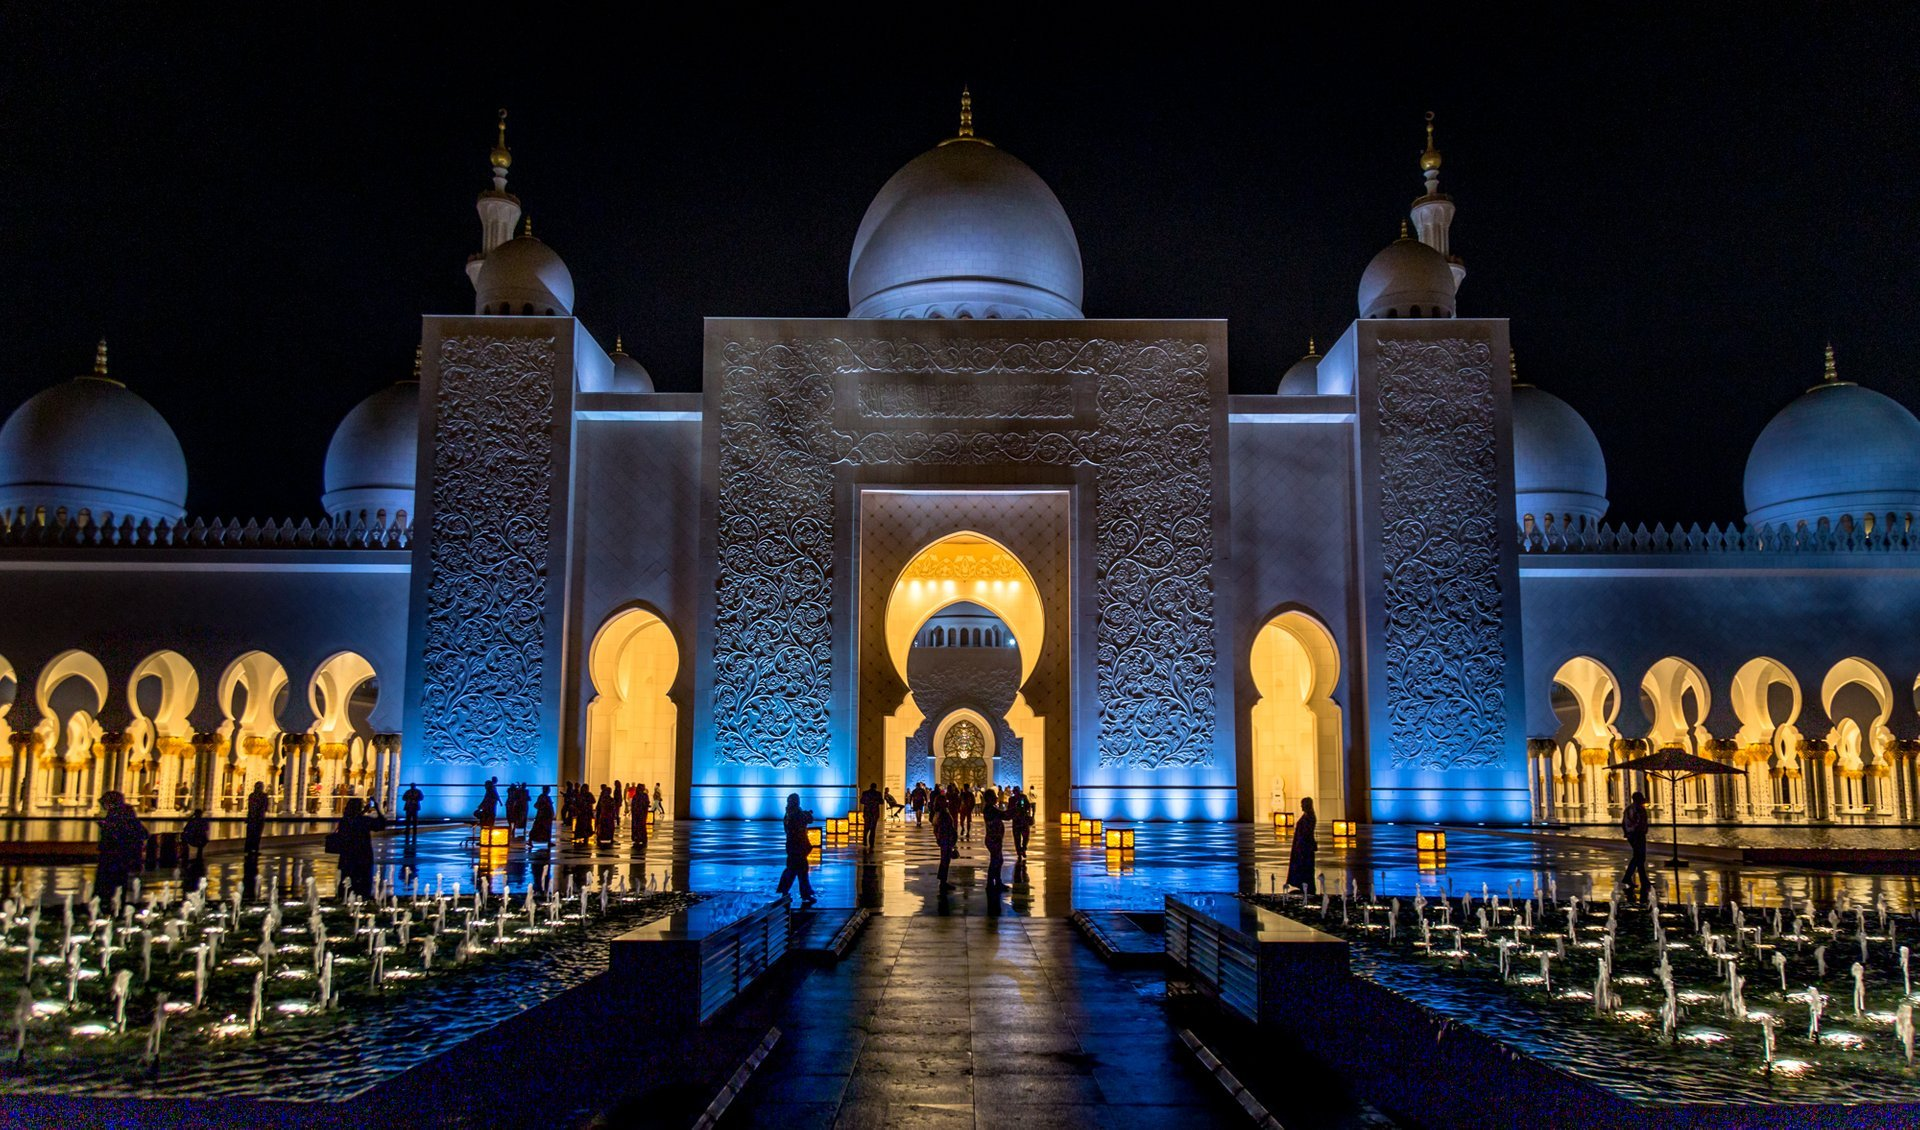 Sheikh Zayed Grand Mosque in Abu Dhabi in United Arab Emirates 2020 - Best Time